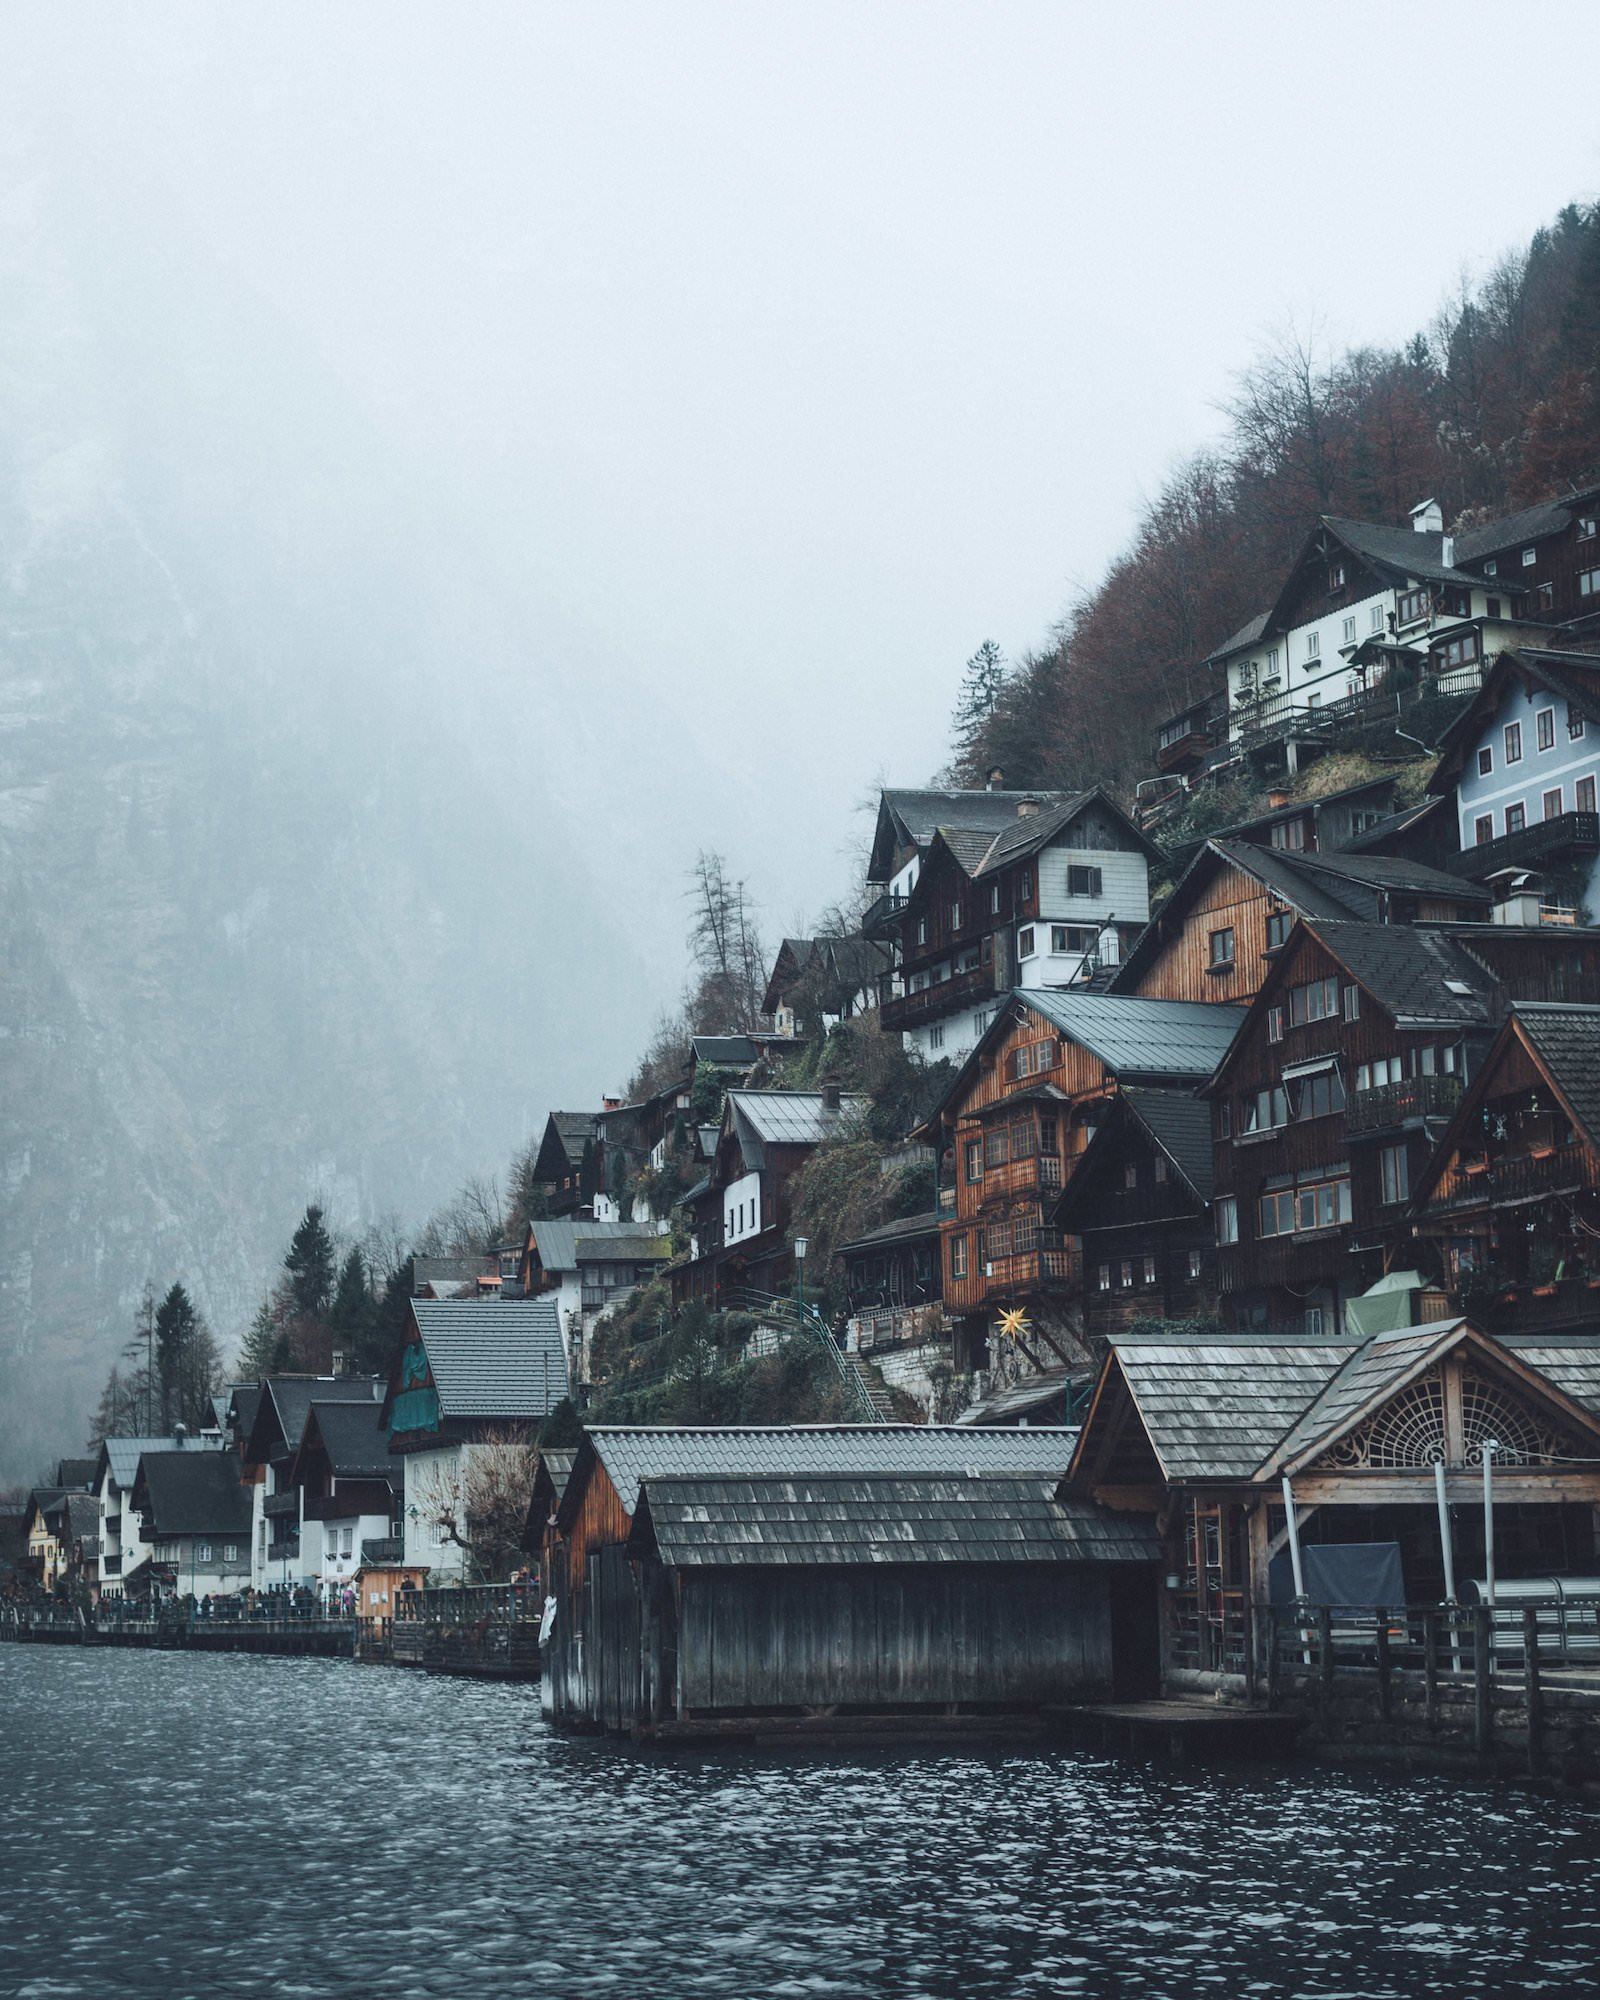 Each photo is like a painting: Belgian creates expressive landscapes of Northern Europe